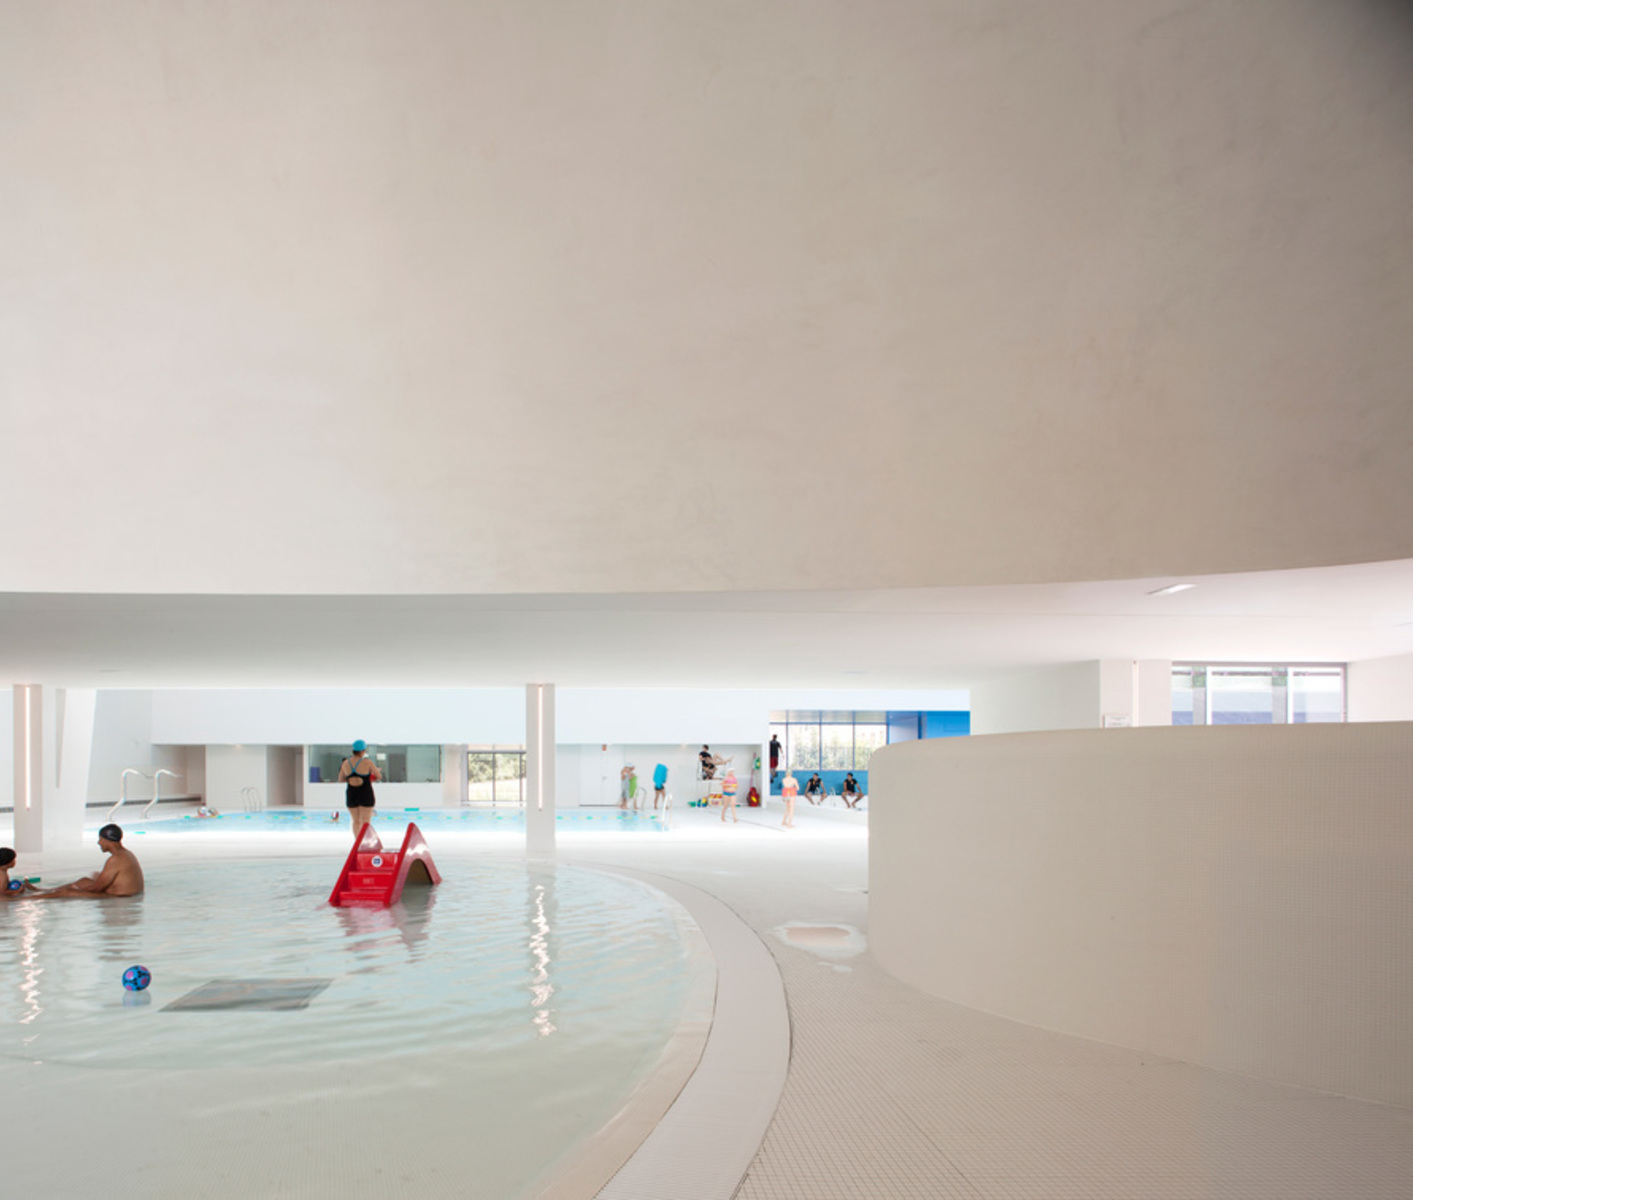 Dominique Coulon reestructura la piscina municipal de Bagneux, París